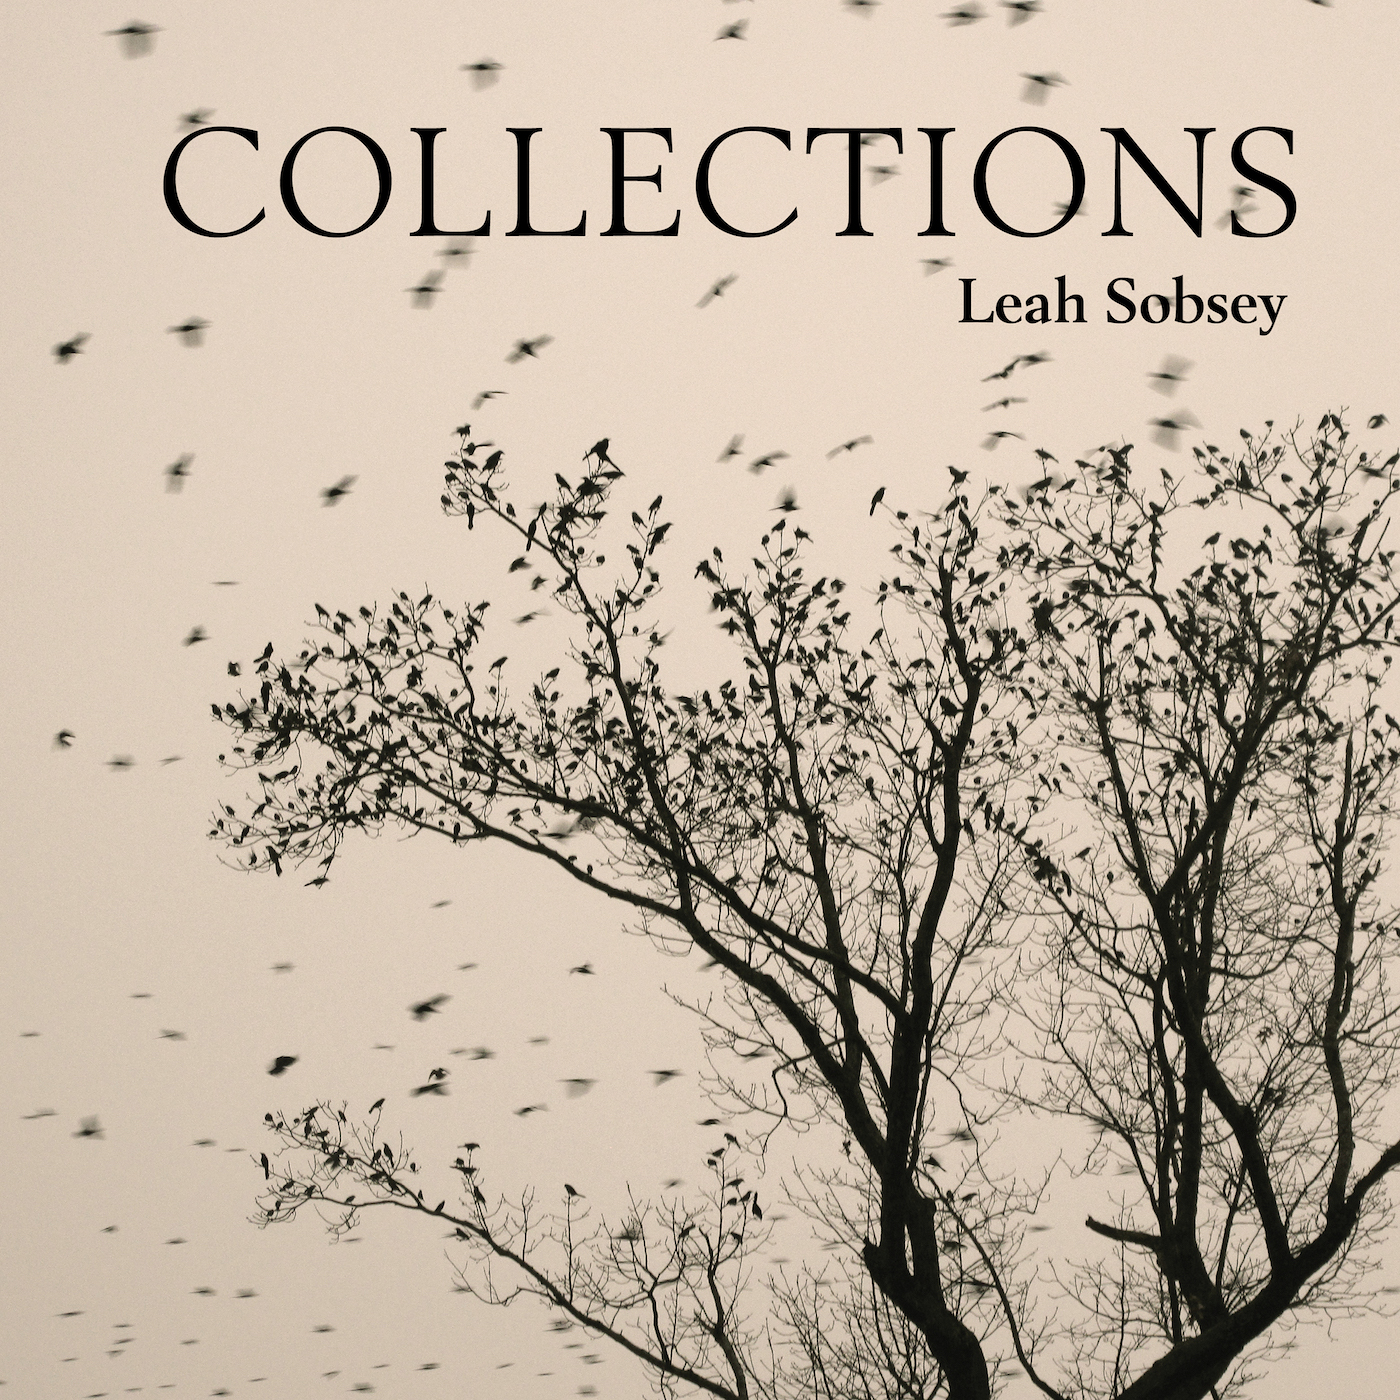 Leah Sobsey: Collections